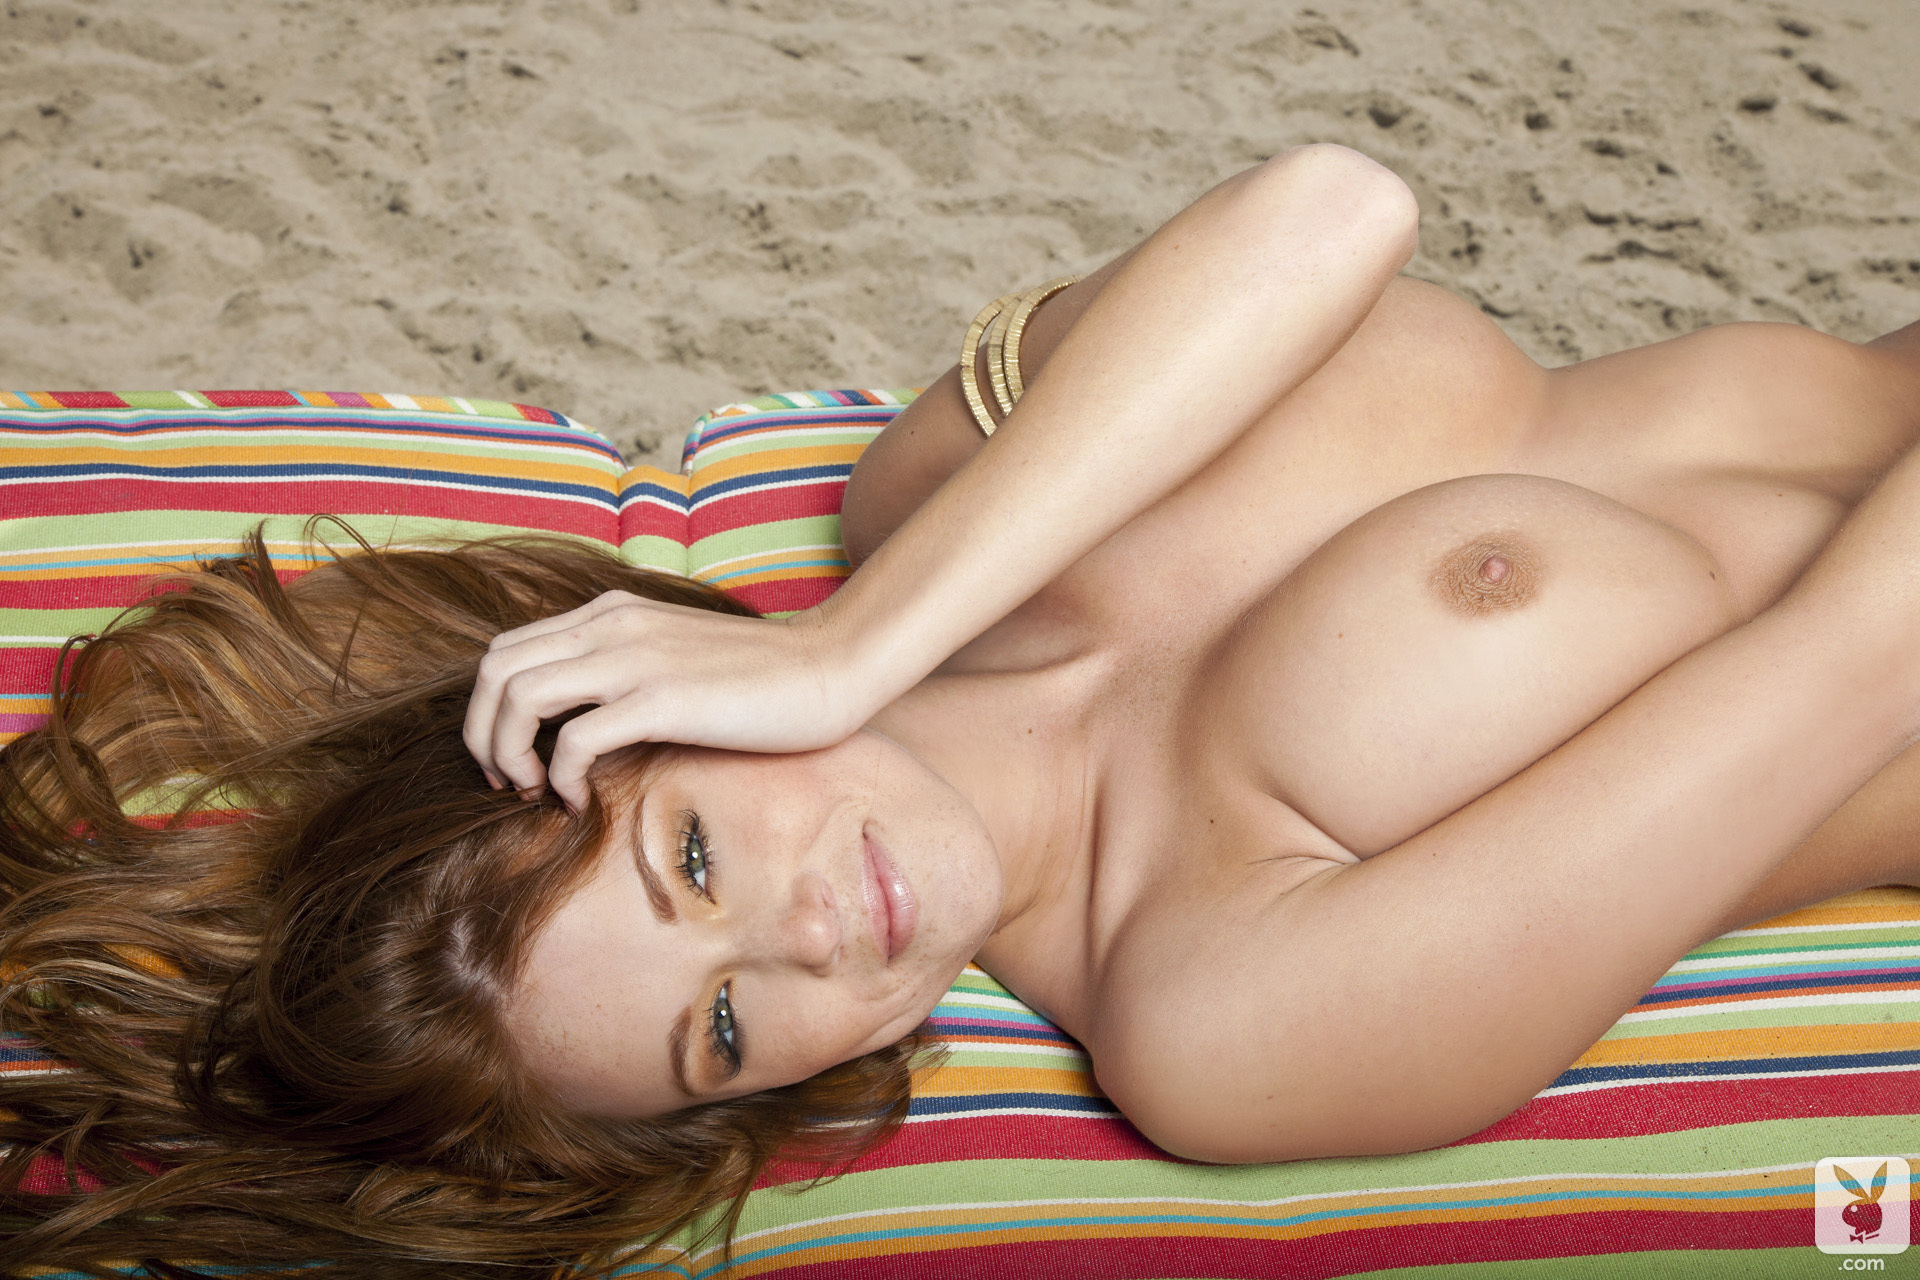 leanna-decker-bikini-boobs-redhead-seaside-playboy-32